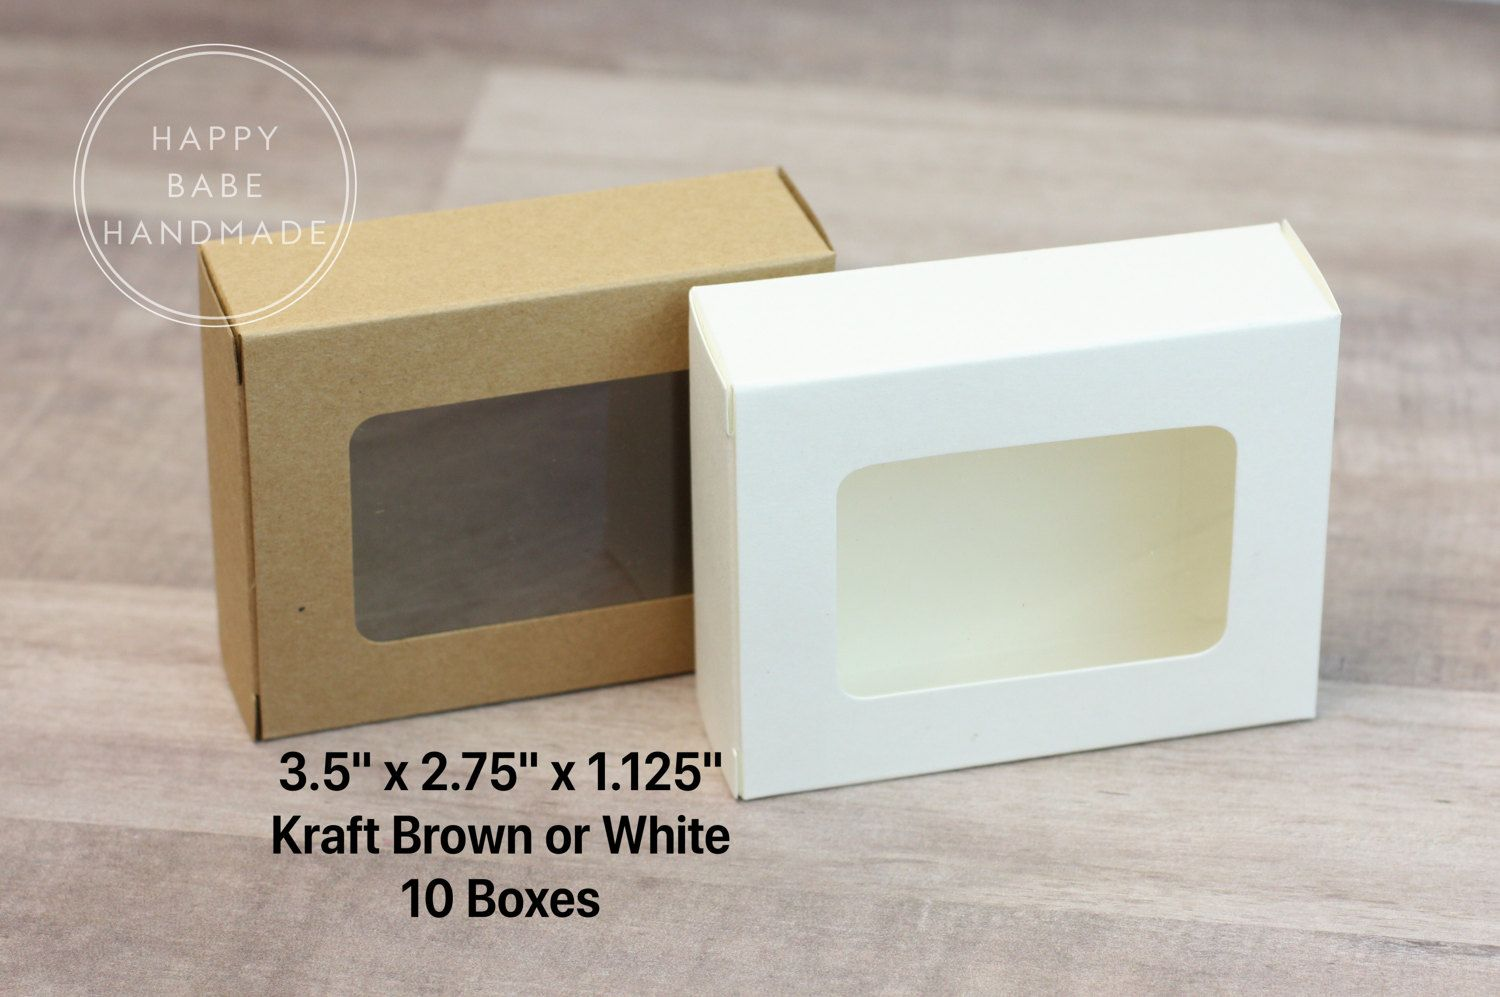 Soap Box 10 Boxes 3 5x2 75x1 125 Display Boxes Product Boxes Kraft Or White Soap Packagin Handmade Soap Packaging Soap Packaging Wedding Gifts Packaging